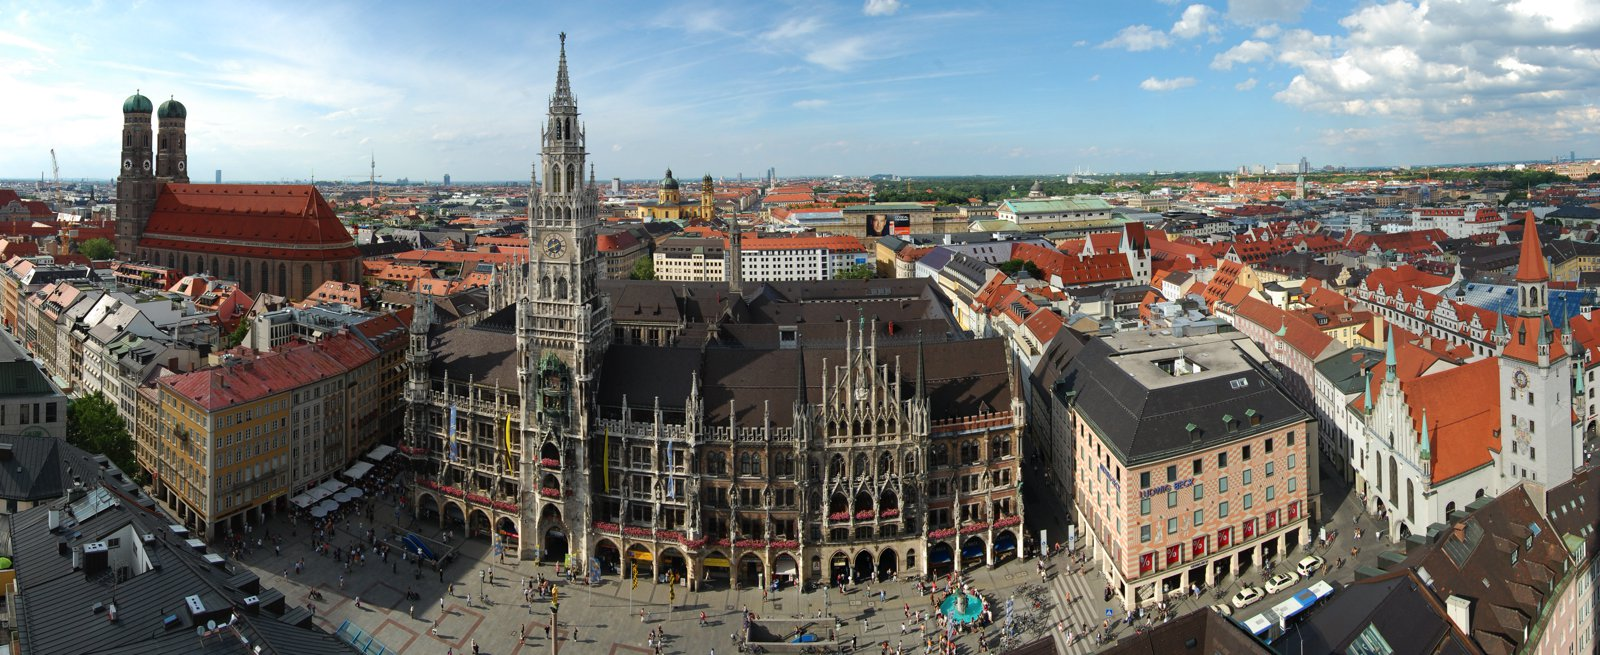 11 Amazing Sights You Have To See In Munich, Germany (7)